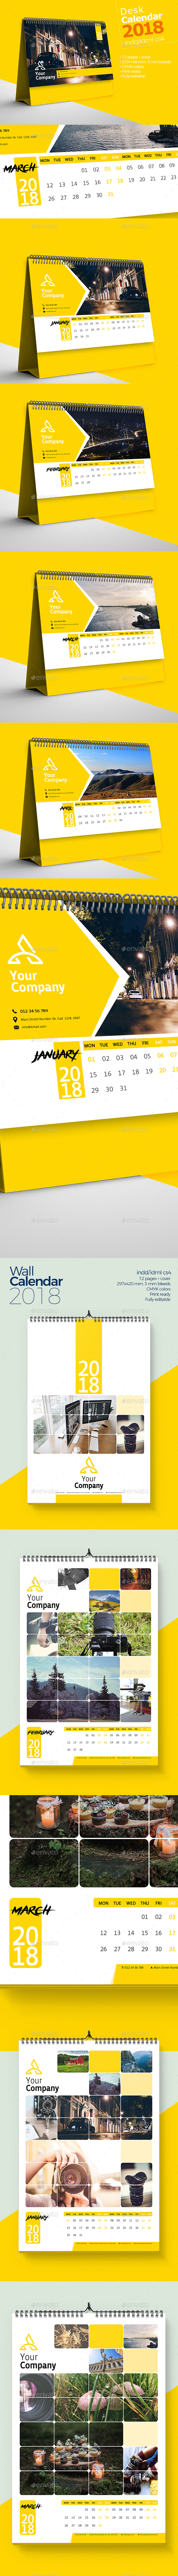 Calendar 2018 V1 Bundle - Calendars Stationery